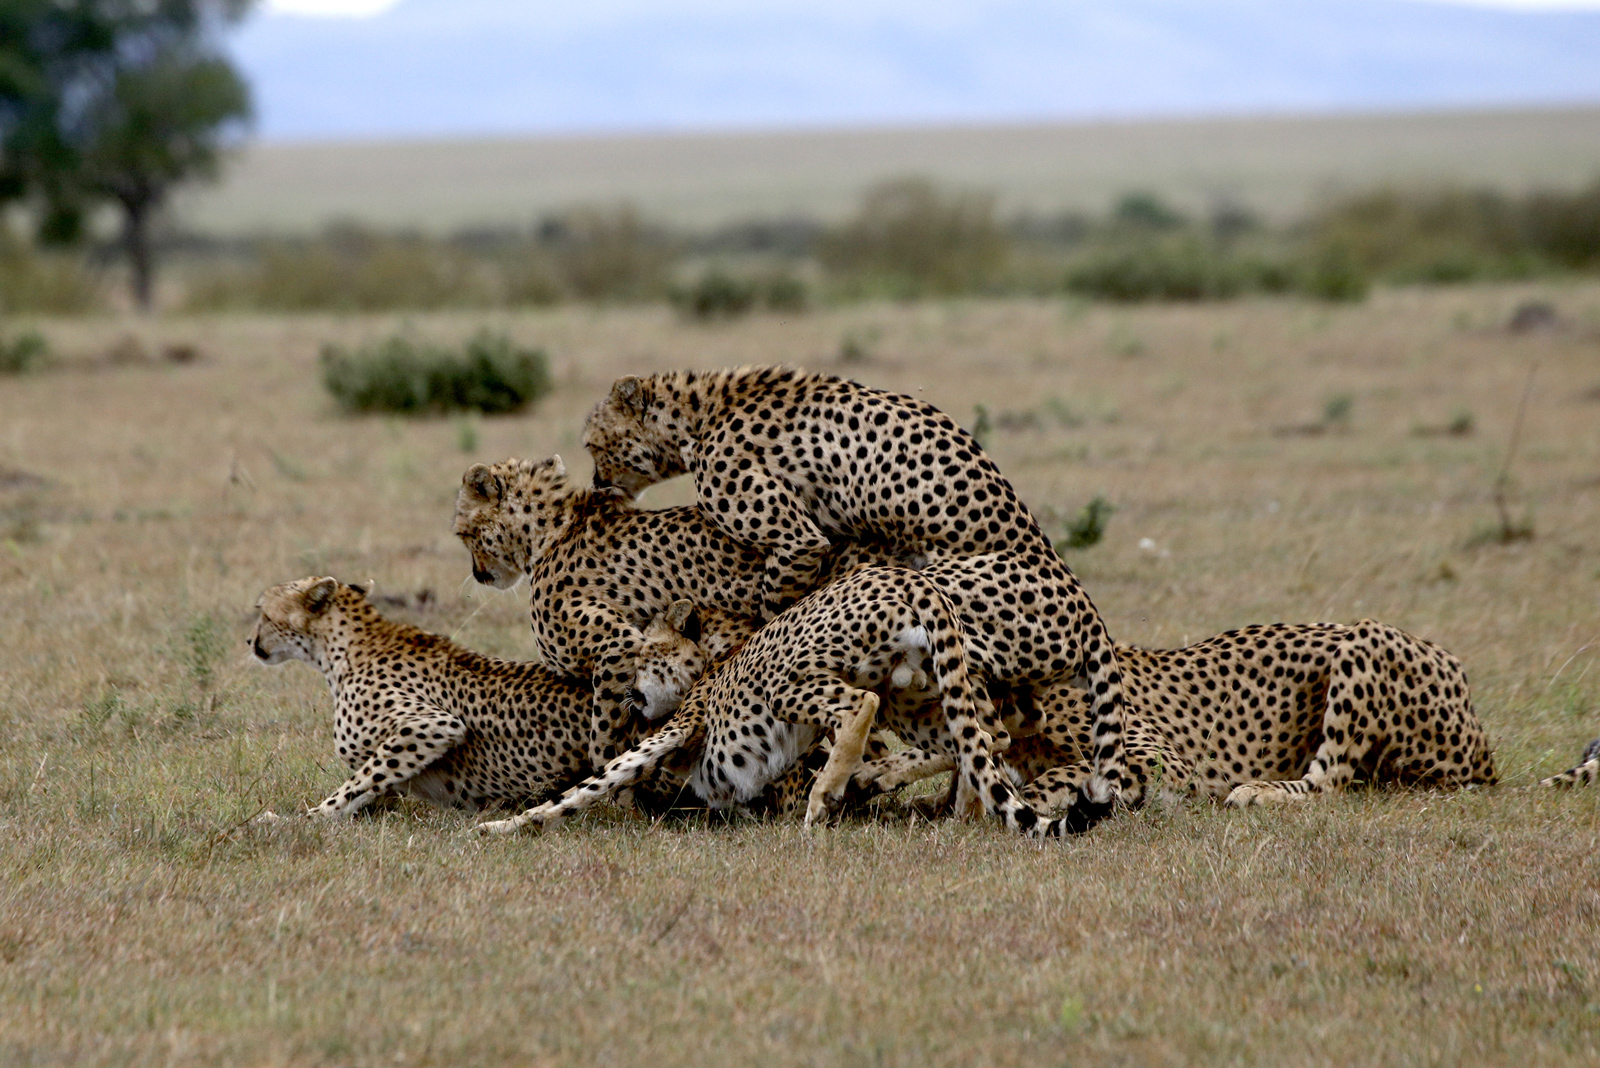 Four of the Fast Five attempting to mate with a female cheetah in the Maasai Mara © Elena Chelysheva